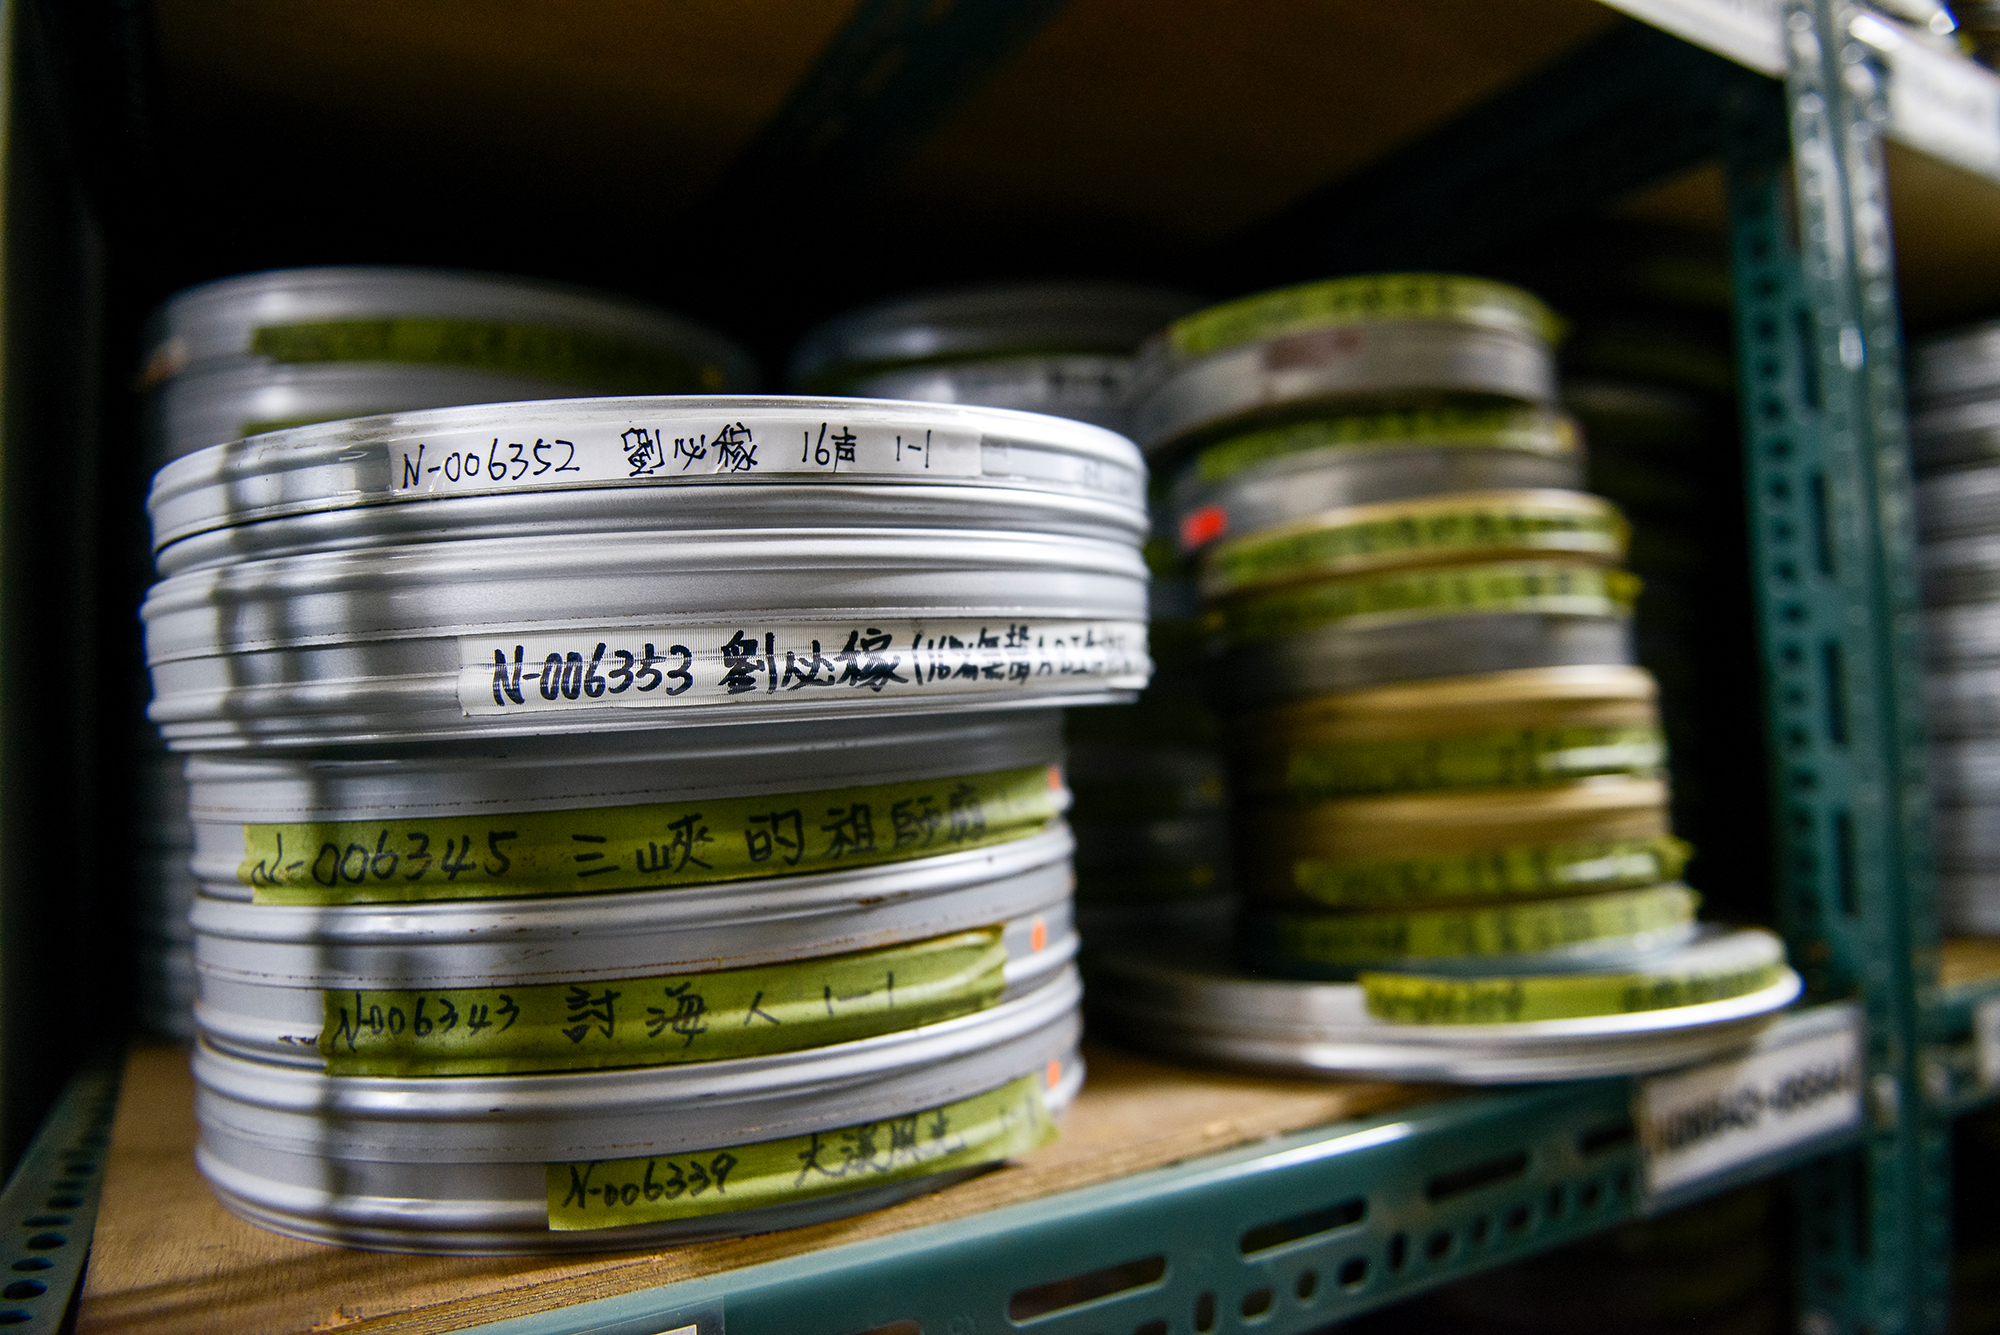 The Taiwan Film Institute's archive in Shulin, New Taipei City, houses many historical treasures of Taiwanese cinema.